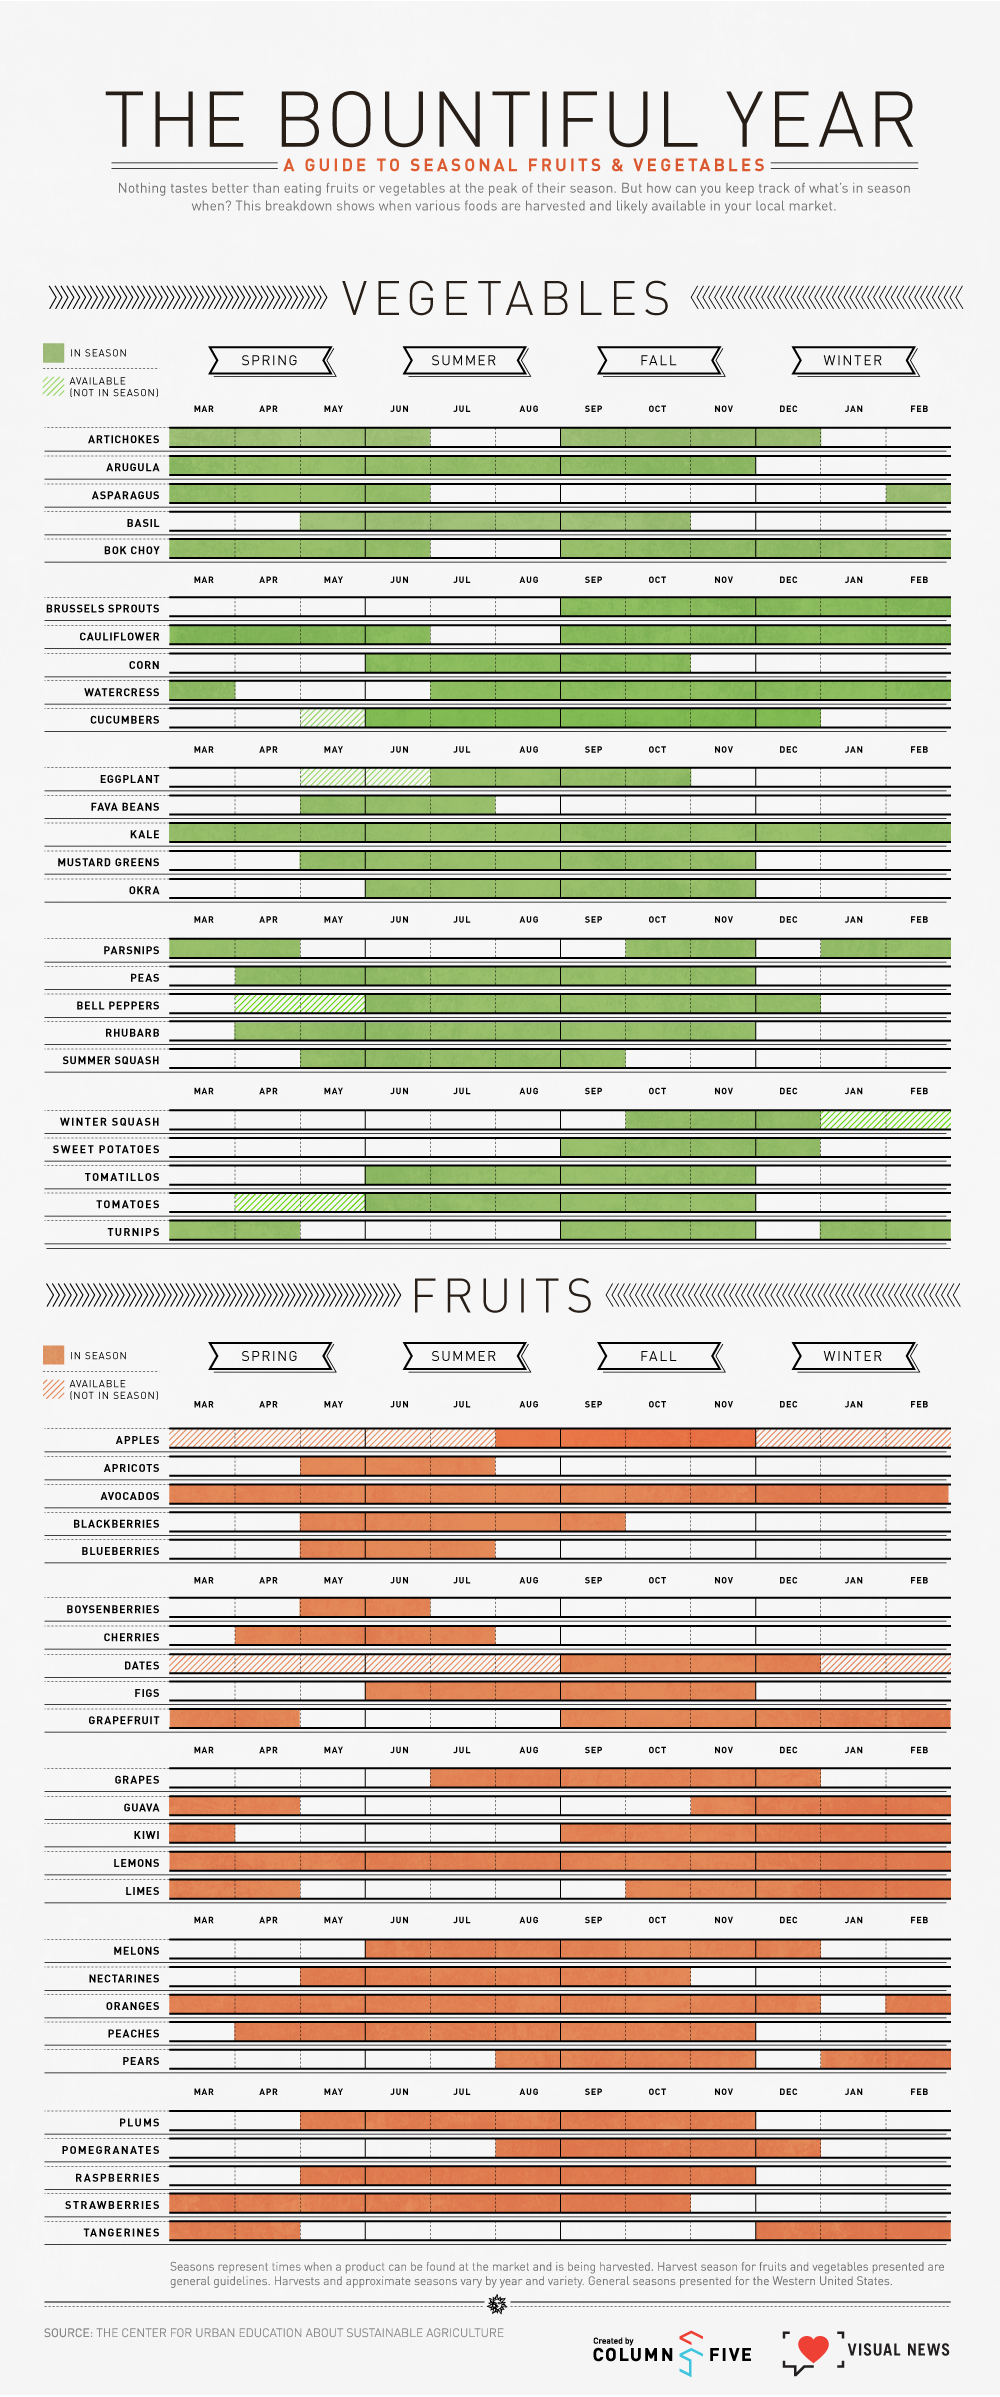 The Bountiful Year: A Guide To Seasonal Fruits & Vegetables